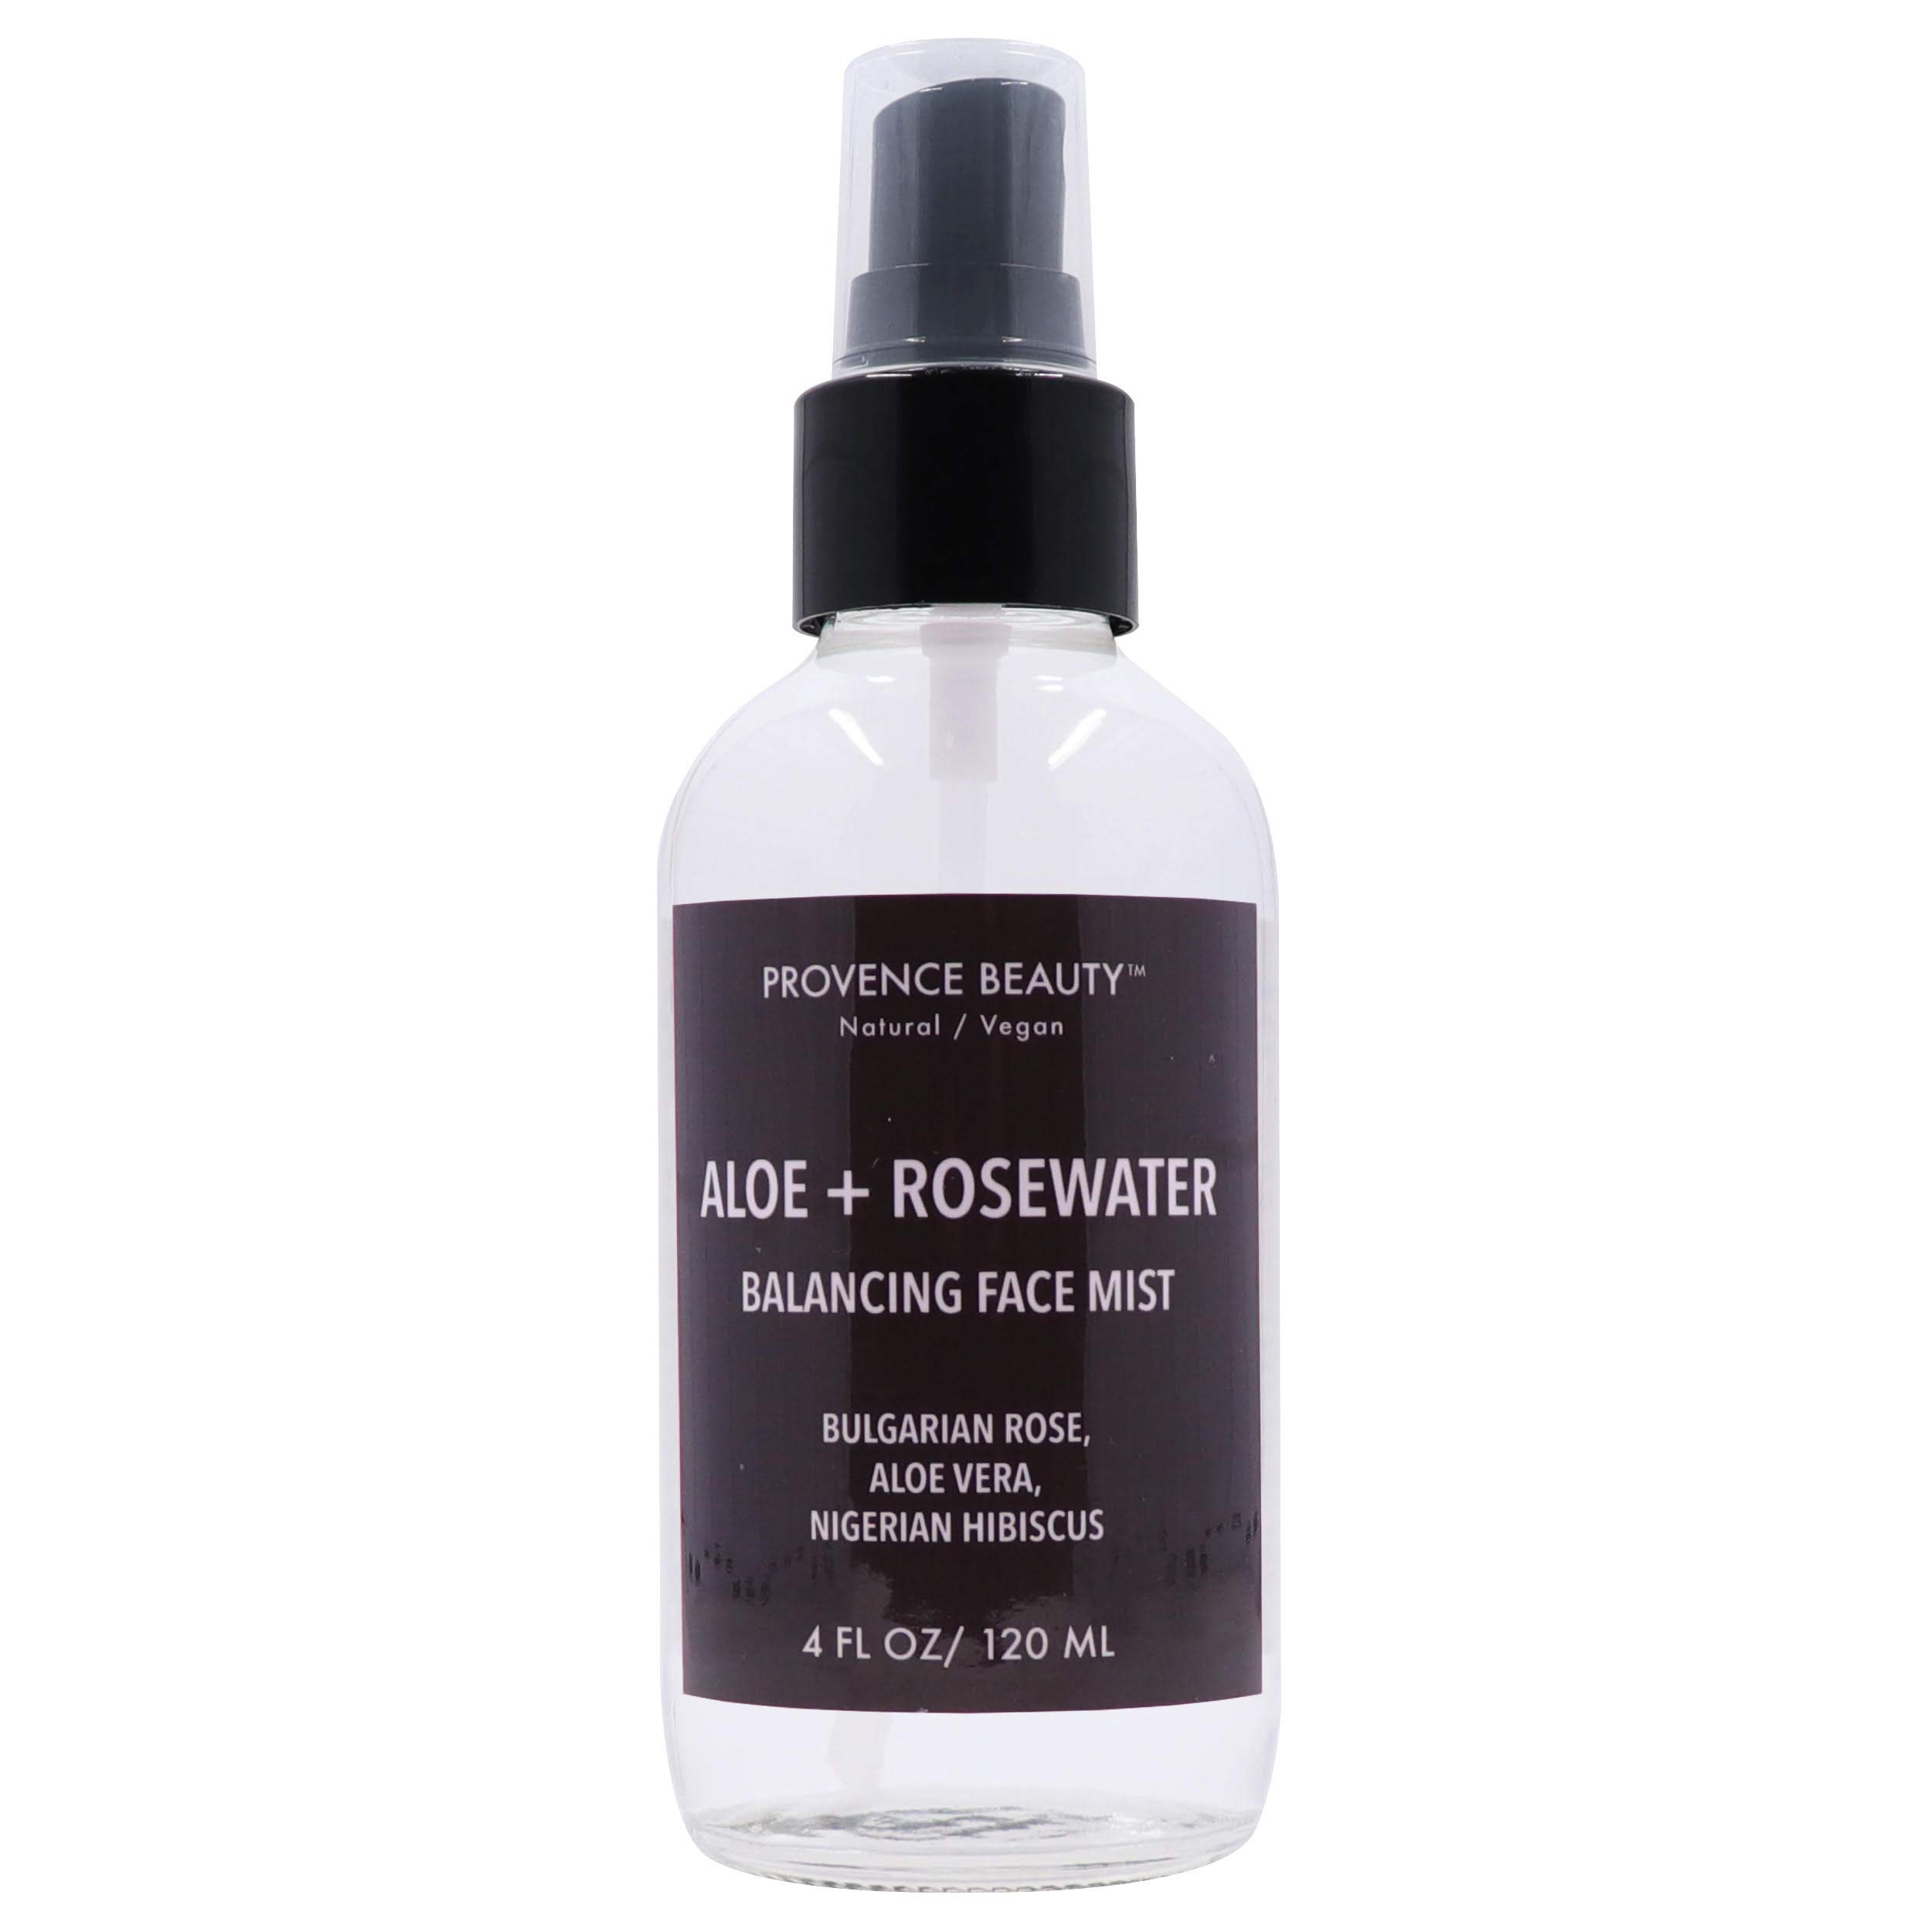 Provence Beauty   Aloe + Rosewater - Balancing, Refreshing & Soothing Facial Mist - Infused with Bulgarian Rose, Aloe Vera, Nigerian Hibiscus - 4FL OZ by Provence Beauty